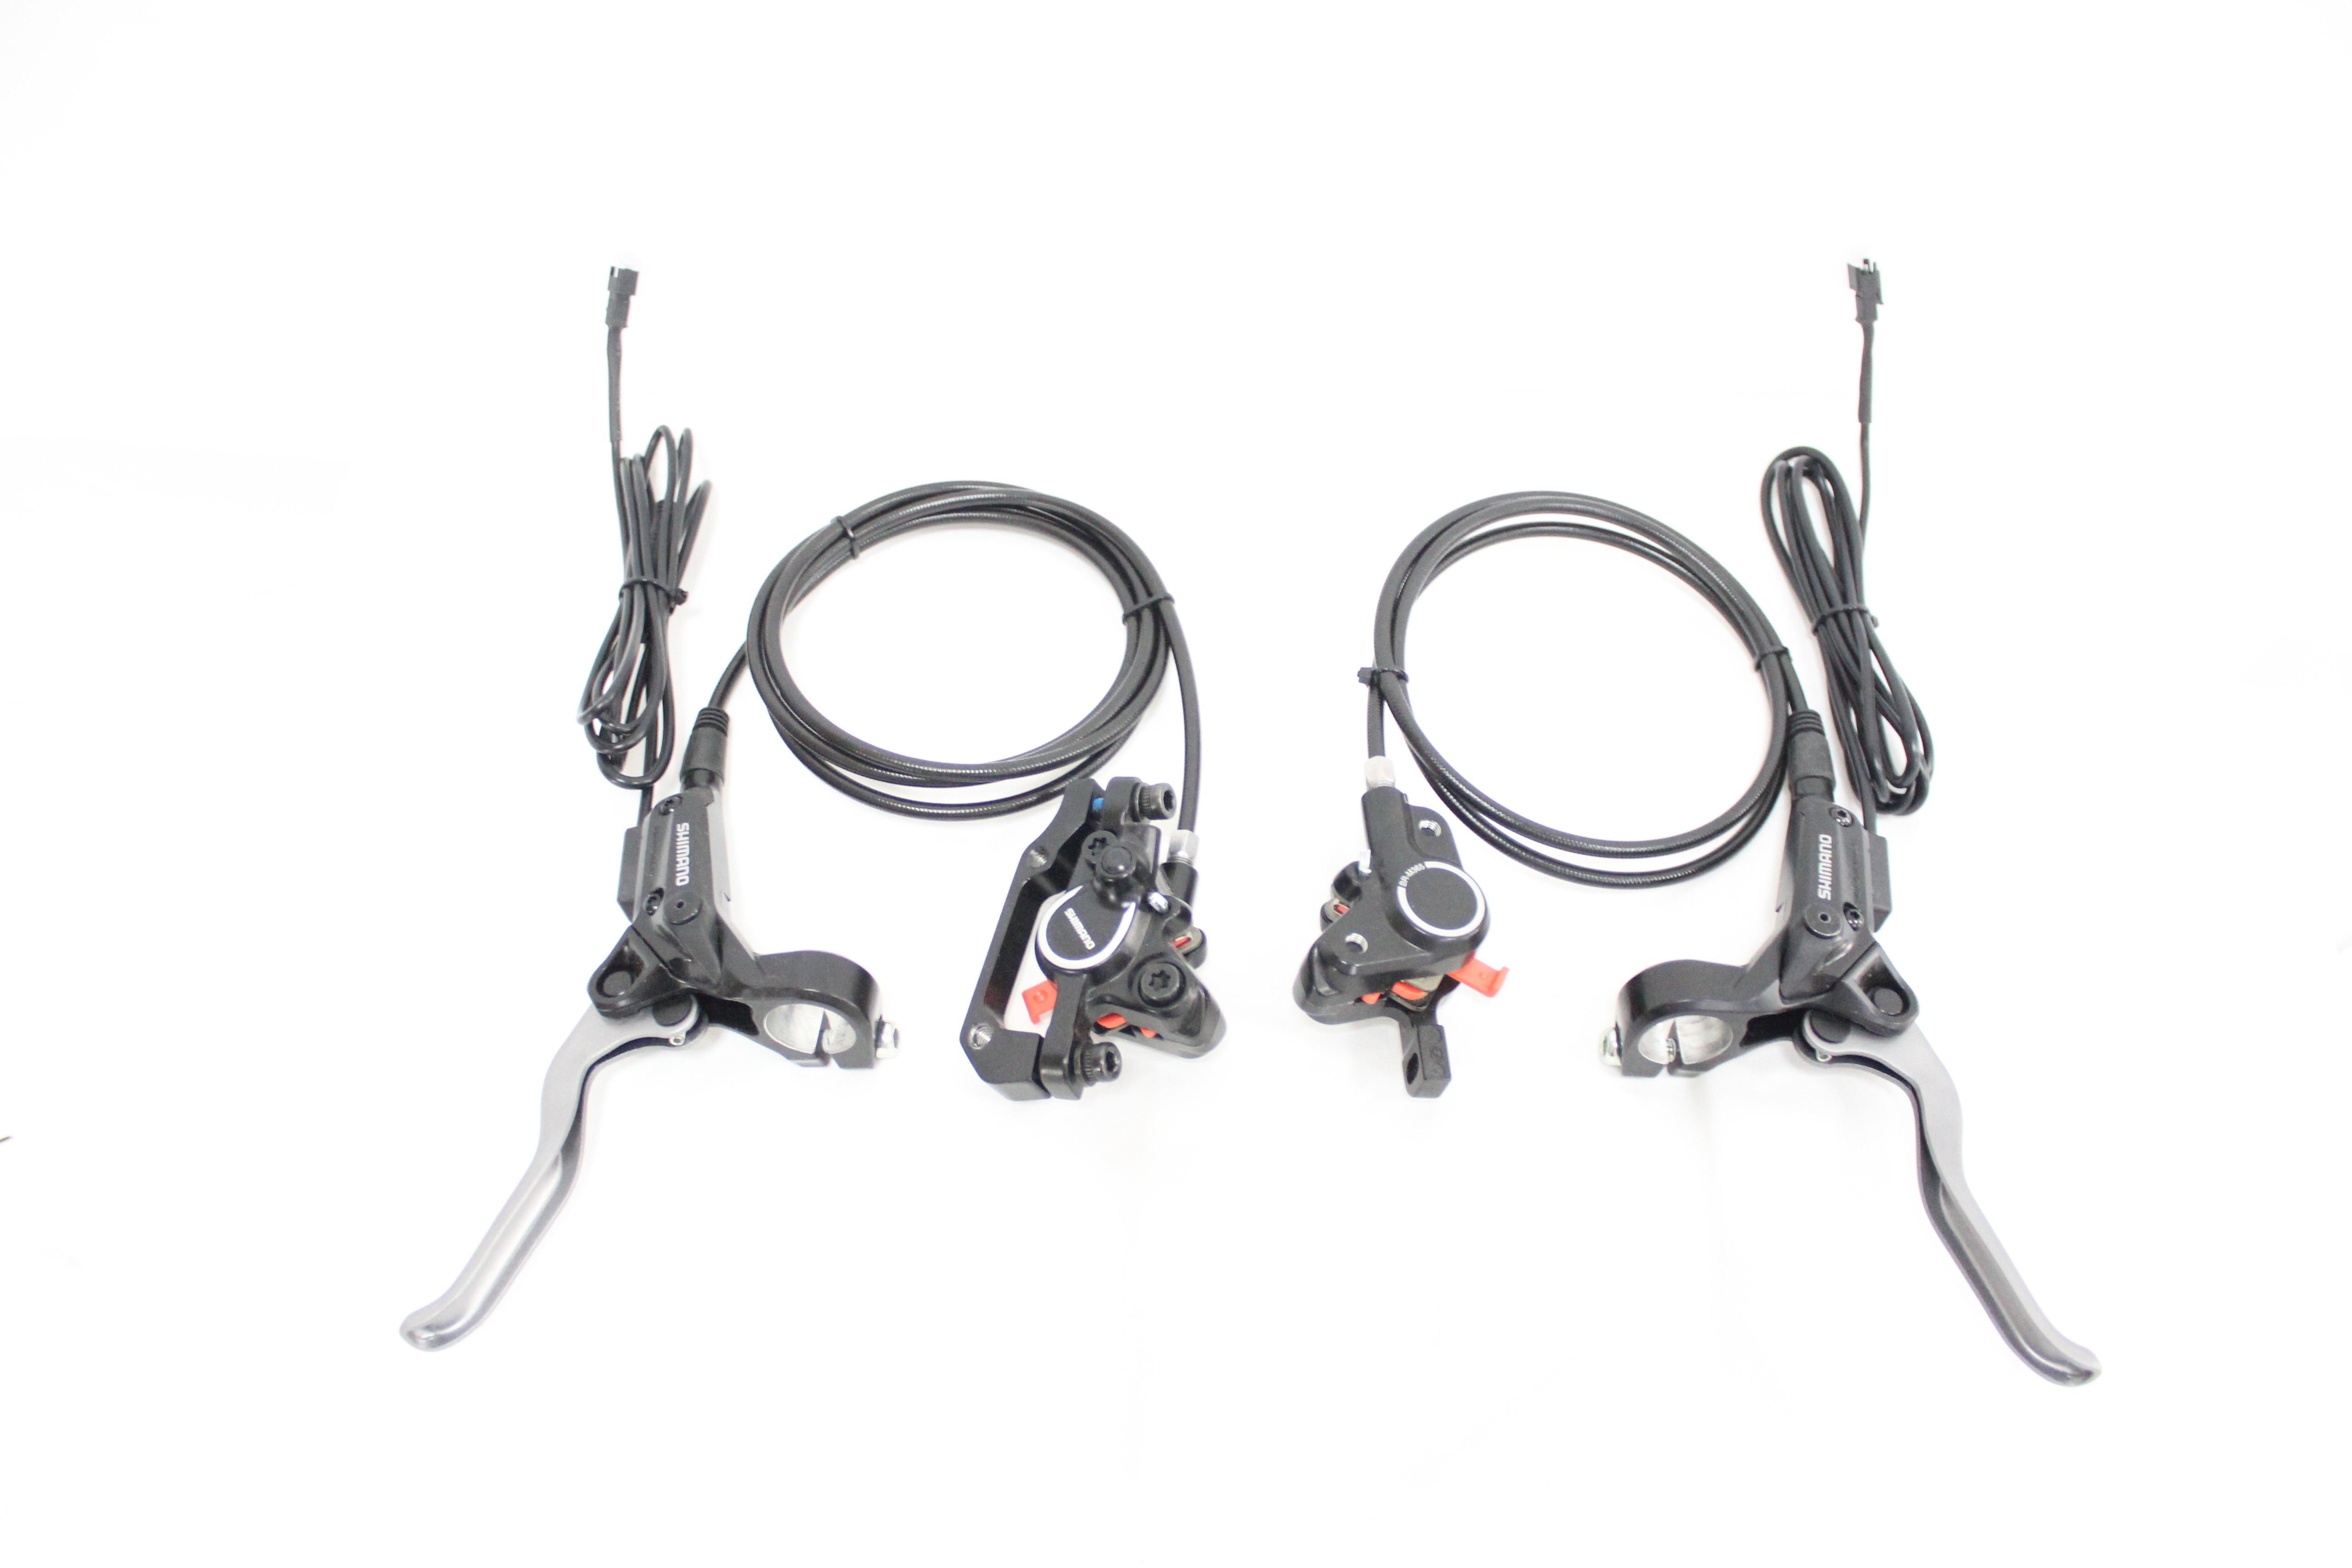 shimano m365 hydraulic disc brakes review